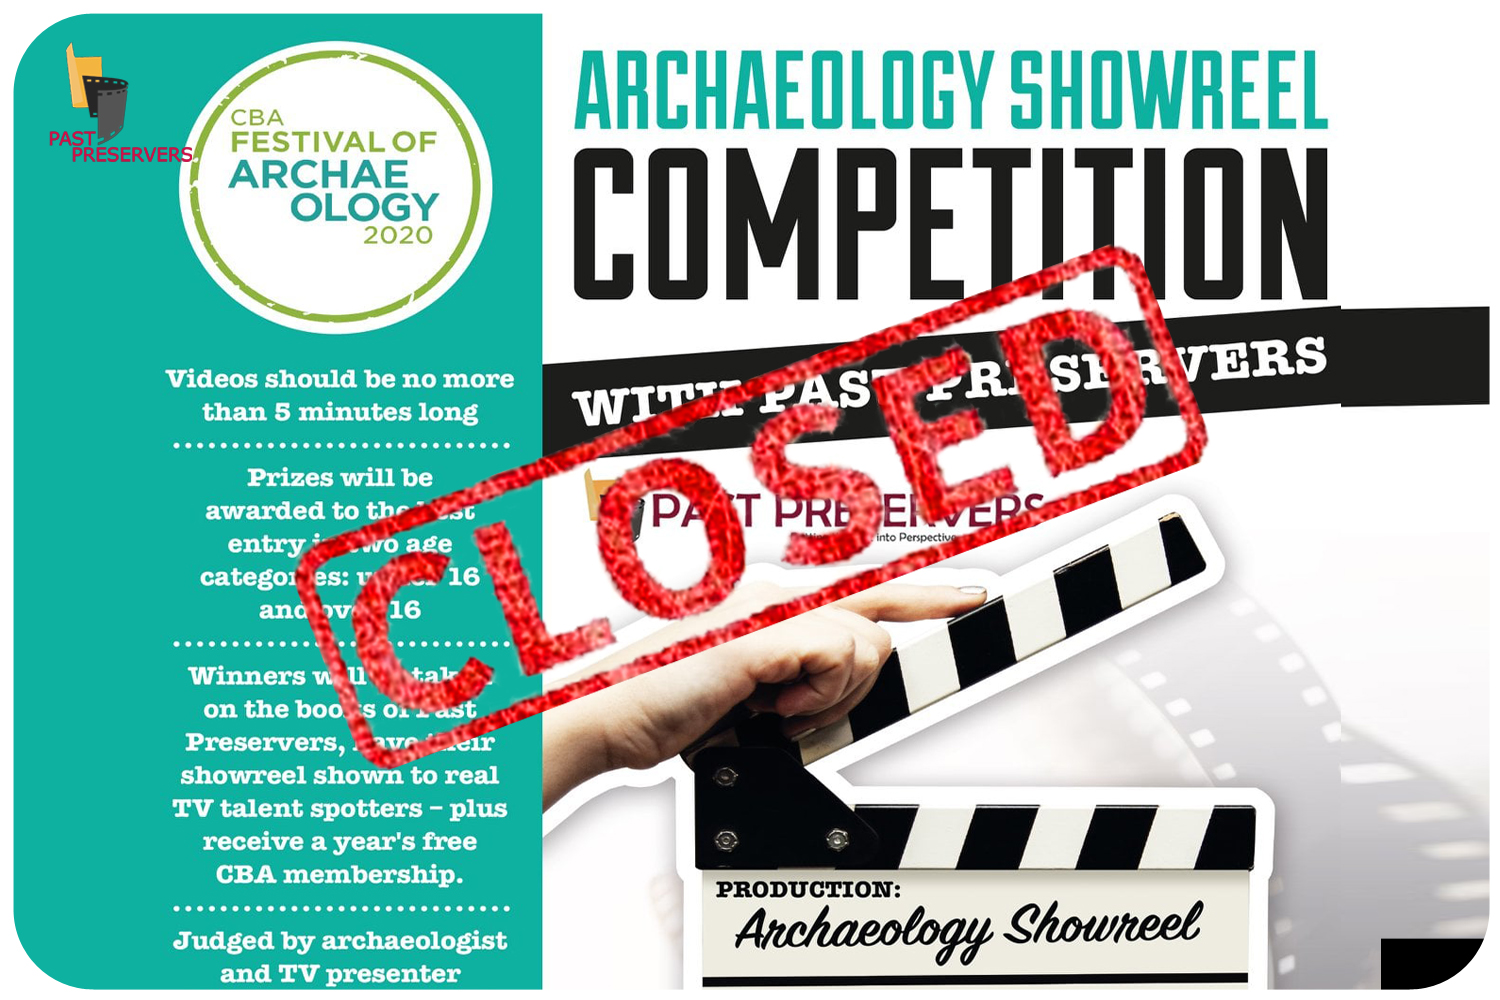 Archaeology Showreel Competition